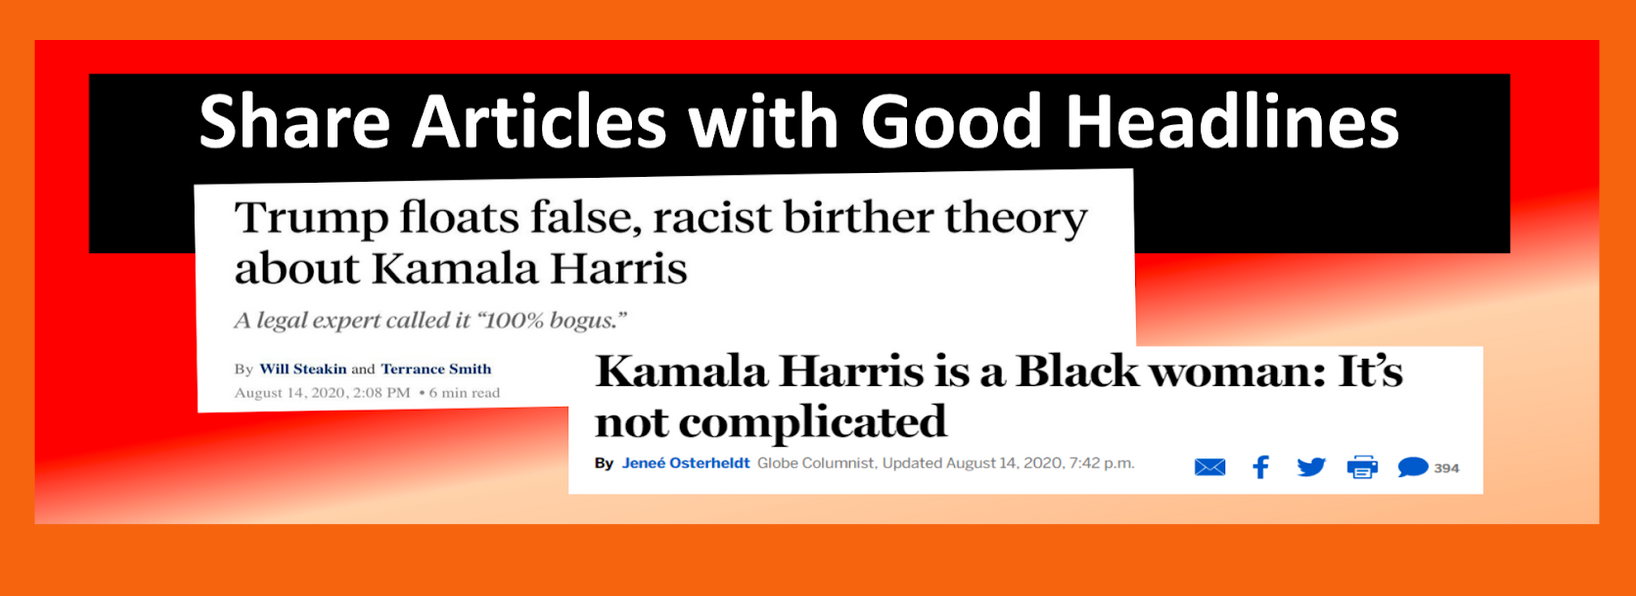 Share articles with good headlines. Example: Trump floats false, racist birther theory about Kamala Harris